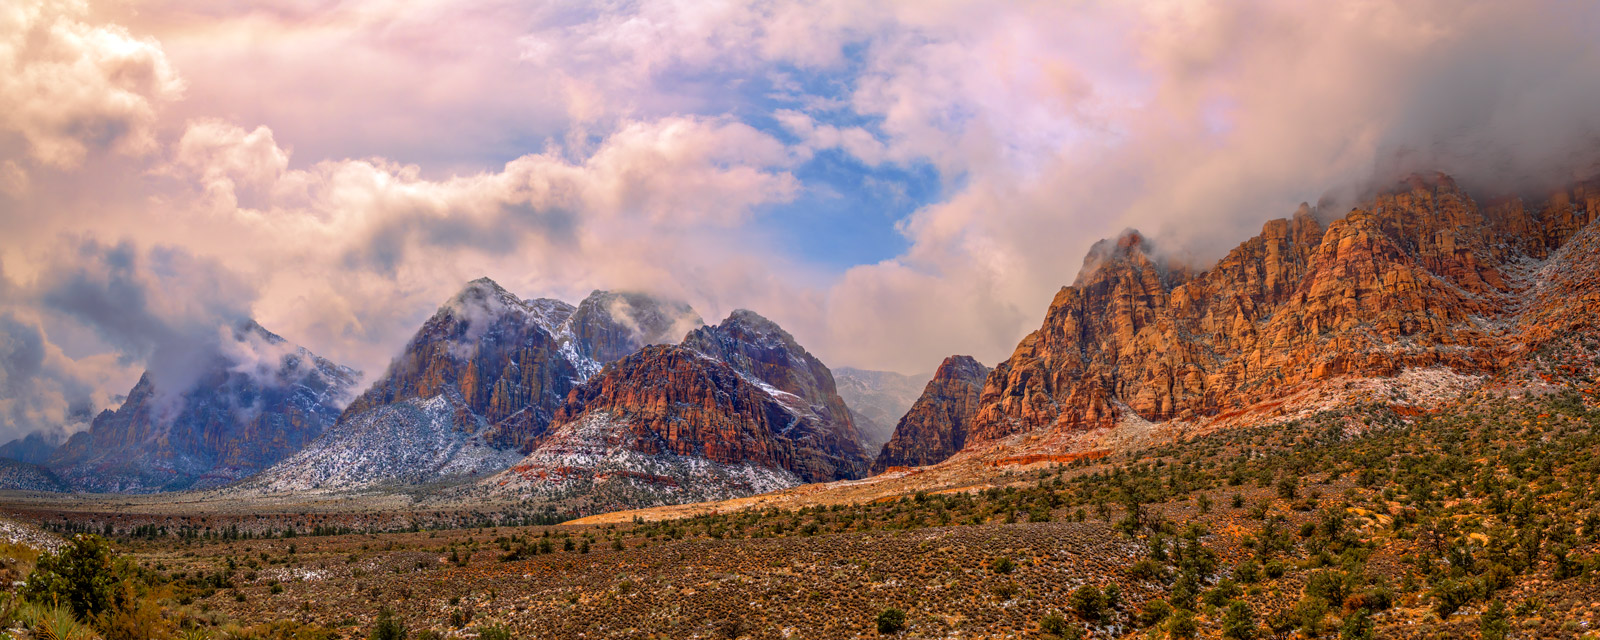 A Limited Edition, Fine Art photograph of Red Rock Canyon with a dusting of snow scattered on the mountains. Available as a Fine...